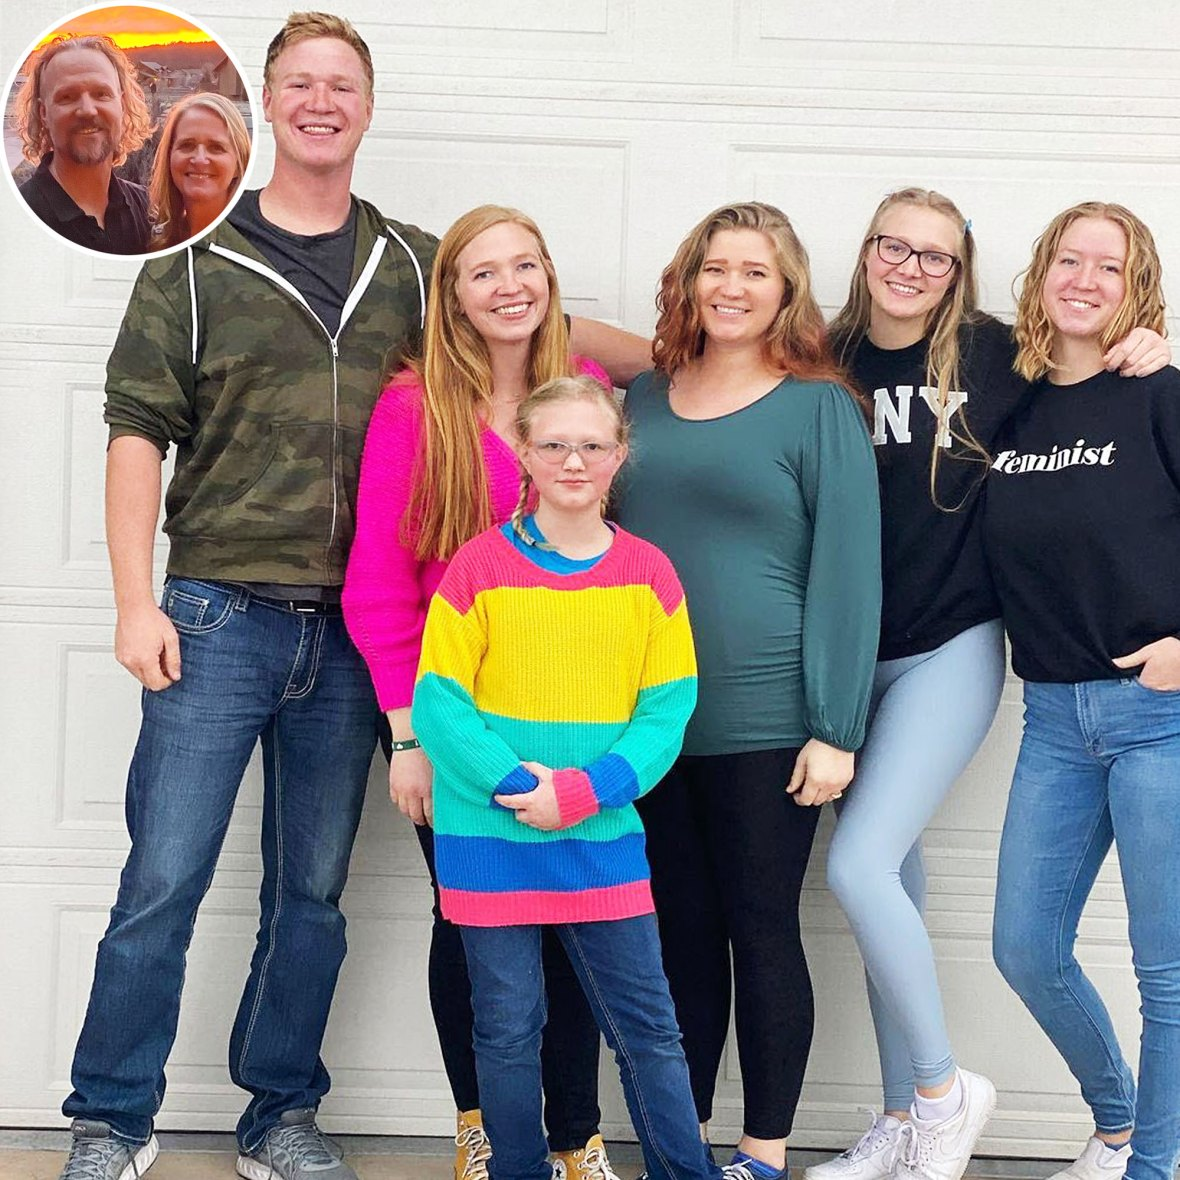 Sister Wives Star Christine Brown Shares Rare Photo With All 6 Her Kody Kids